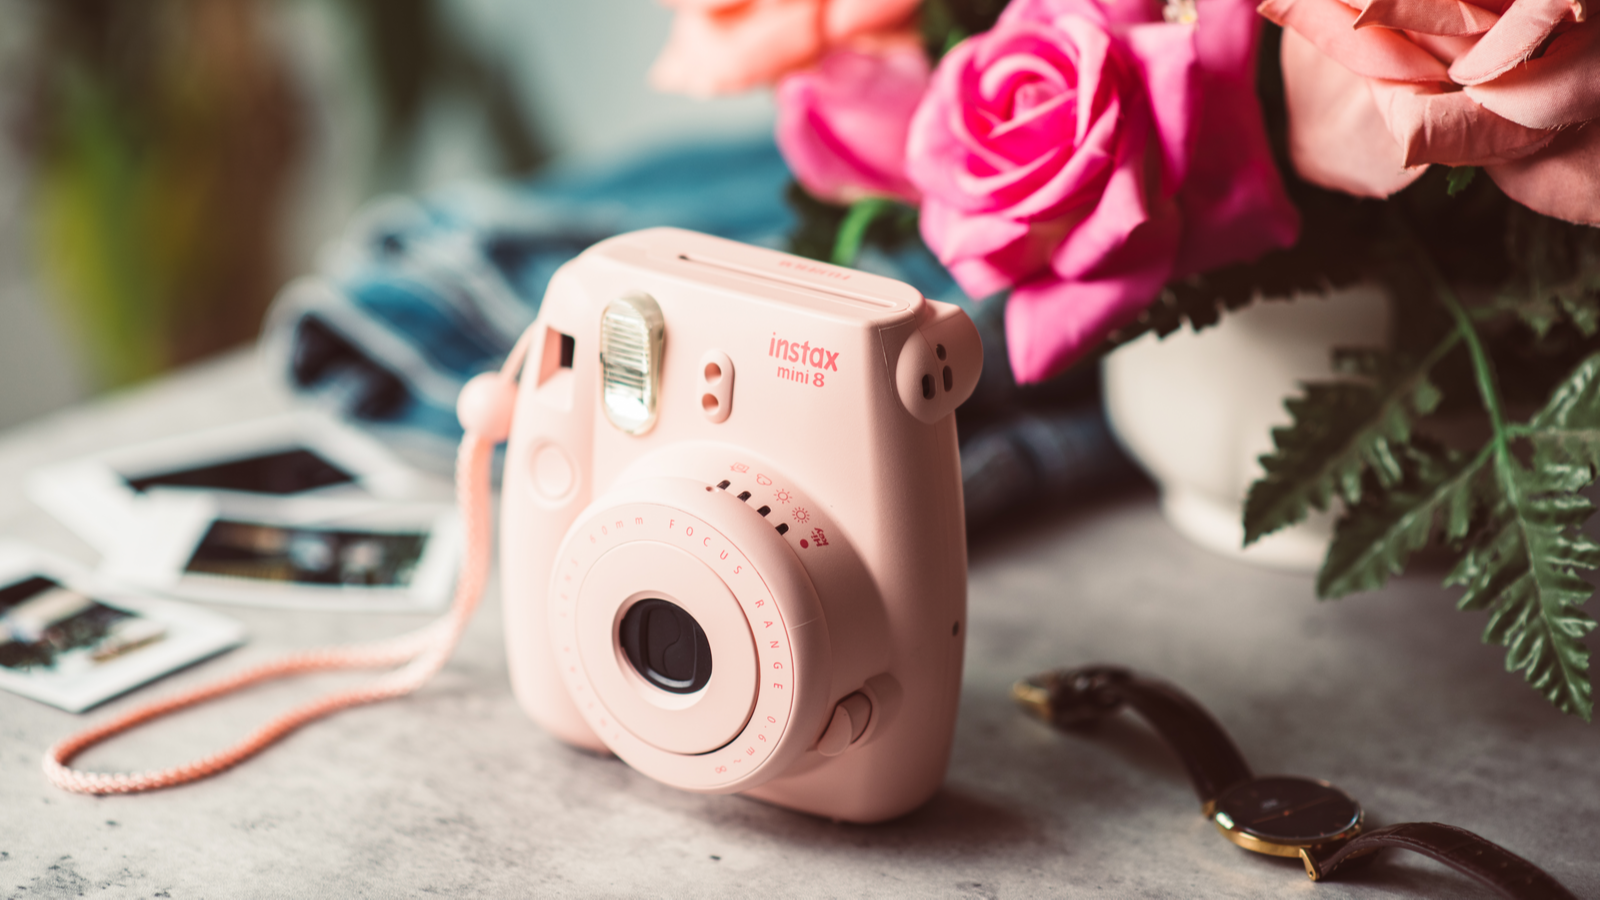 The pink Fujifilm Instax mini 8 on table next to photos, a watch, and a small vase of bright roses